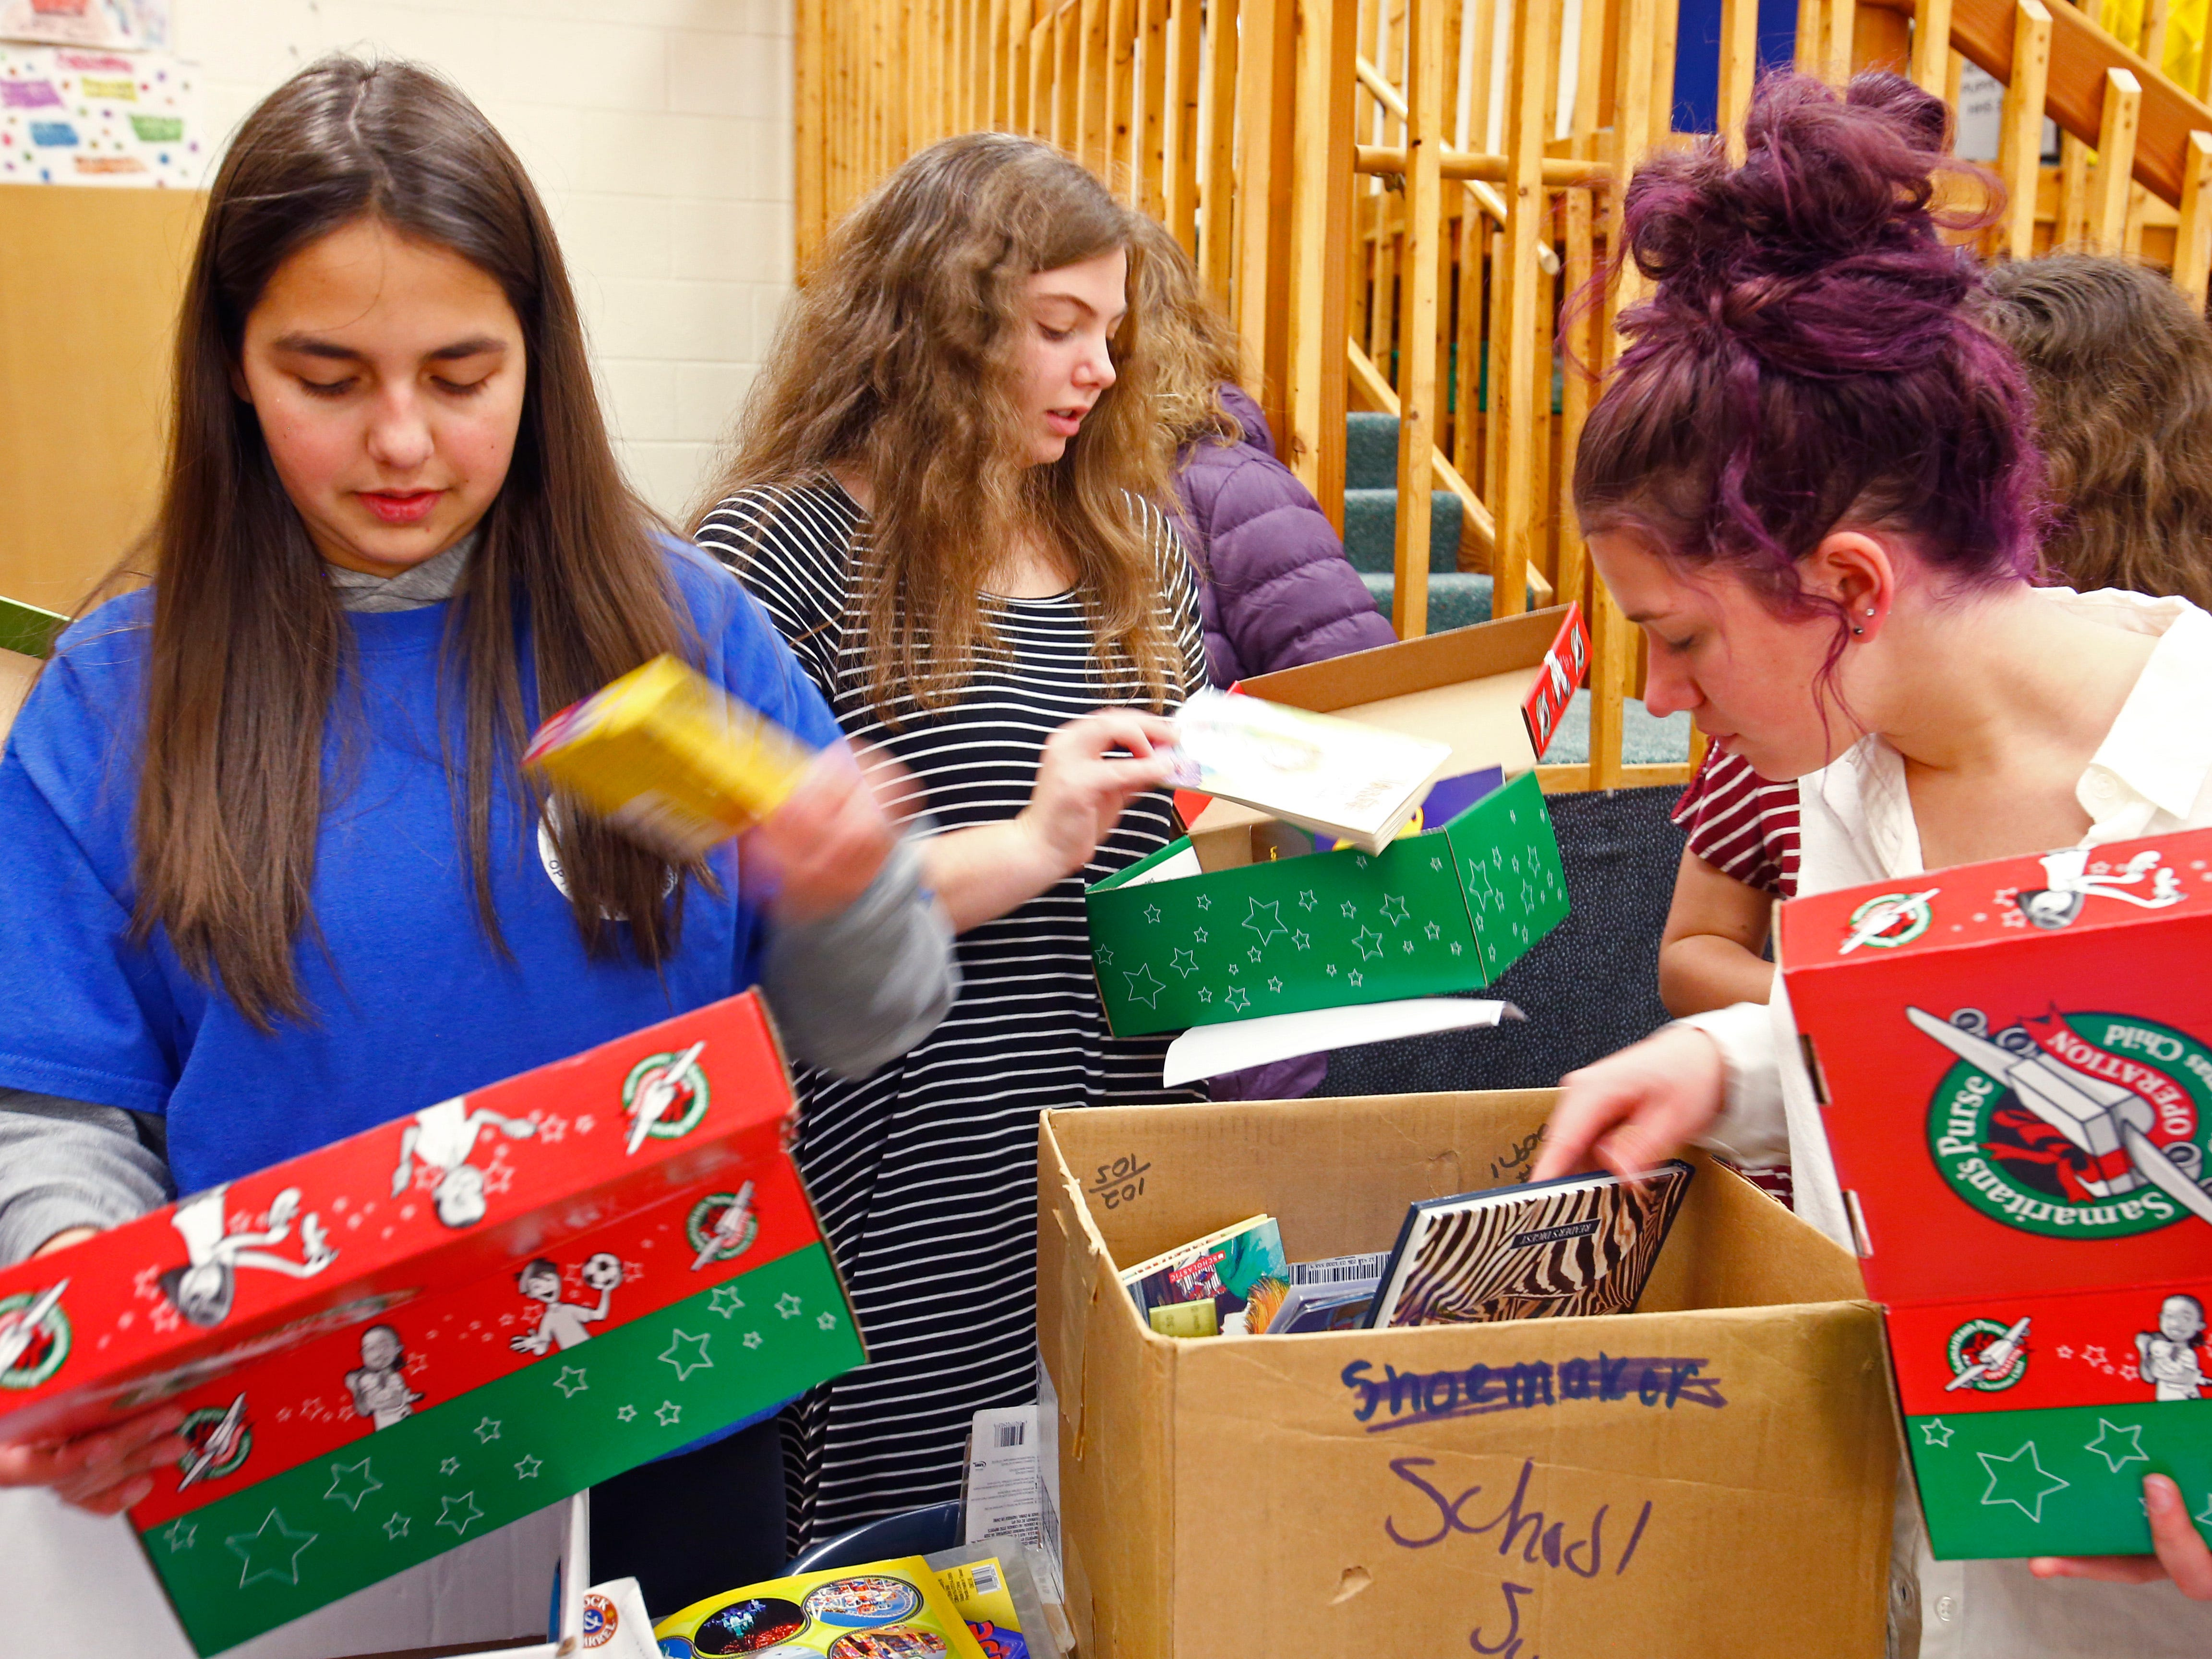 Sophomore Ashley Velasquez (left), Senior Molly Huberd and Junior Jenna Withrow pick items to pack into boxes for the Samaritan's Purse Operation Christmas Child project. Huberd organized the project for members of the Sussex Hamilton Junior Optimist International club to pack shoebox-sized containers with toys, clothing, personal care and other items on Nov. 7 as part of a service project with the Sussex/Lisbon/Lannon Optimist Club.